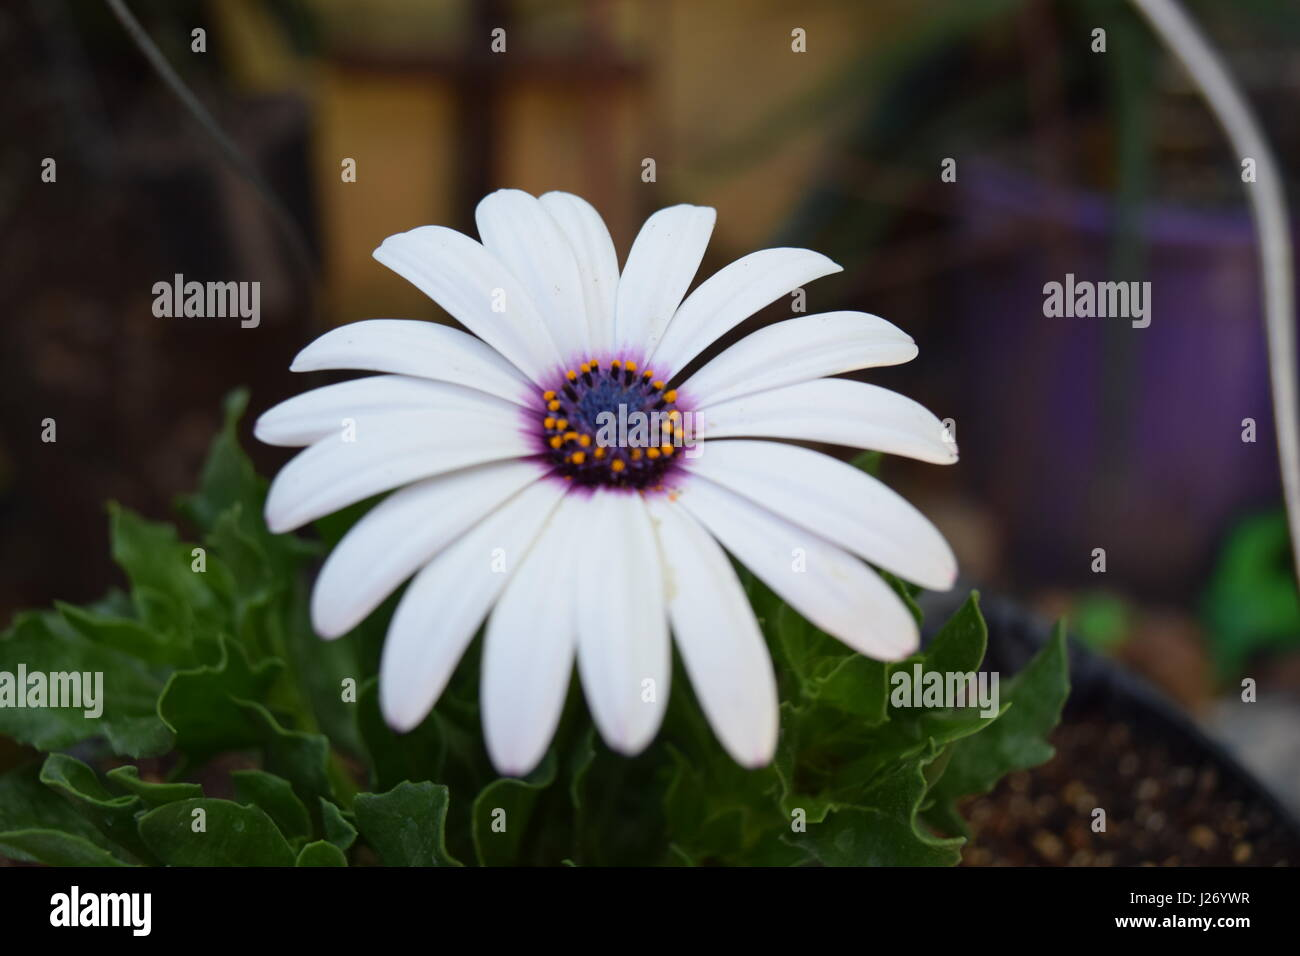 Blooming flower - Stock Image